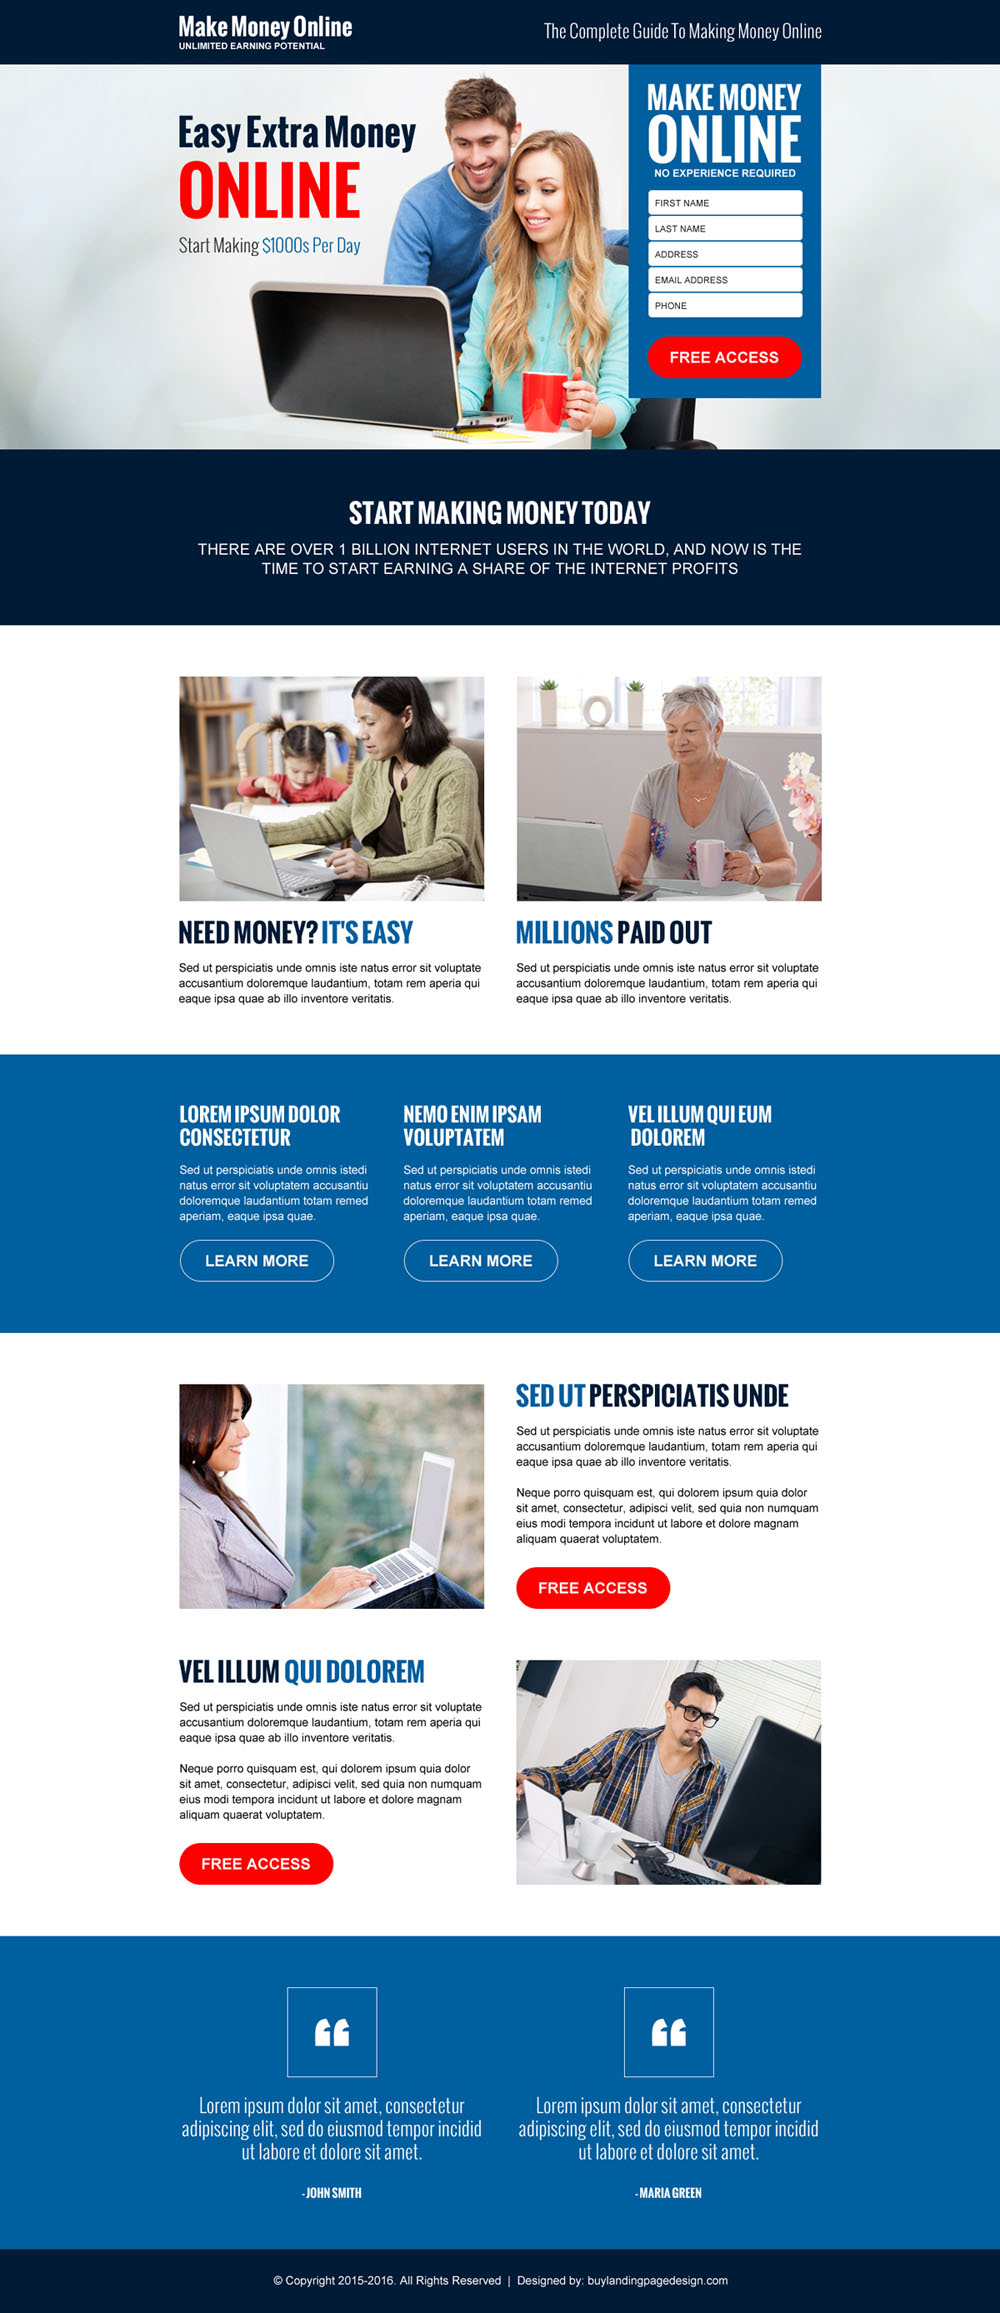 make-money-online-guide-lead-generation-landing-page-design-022